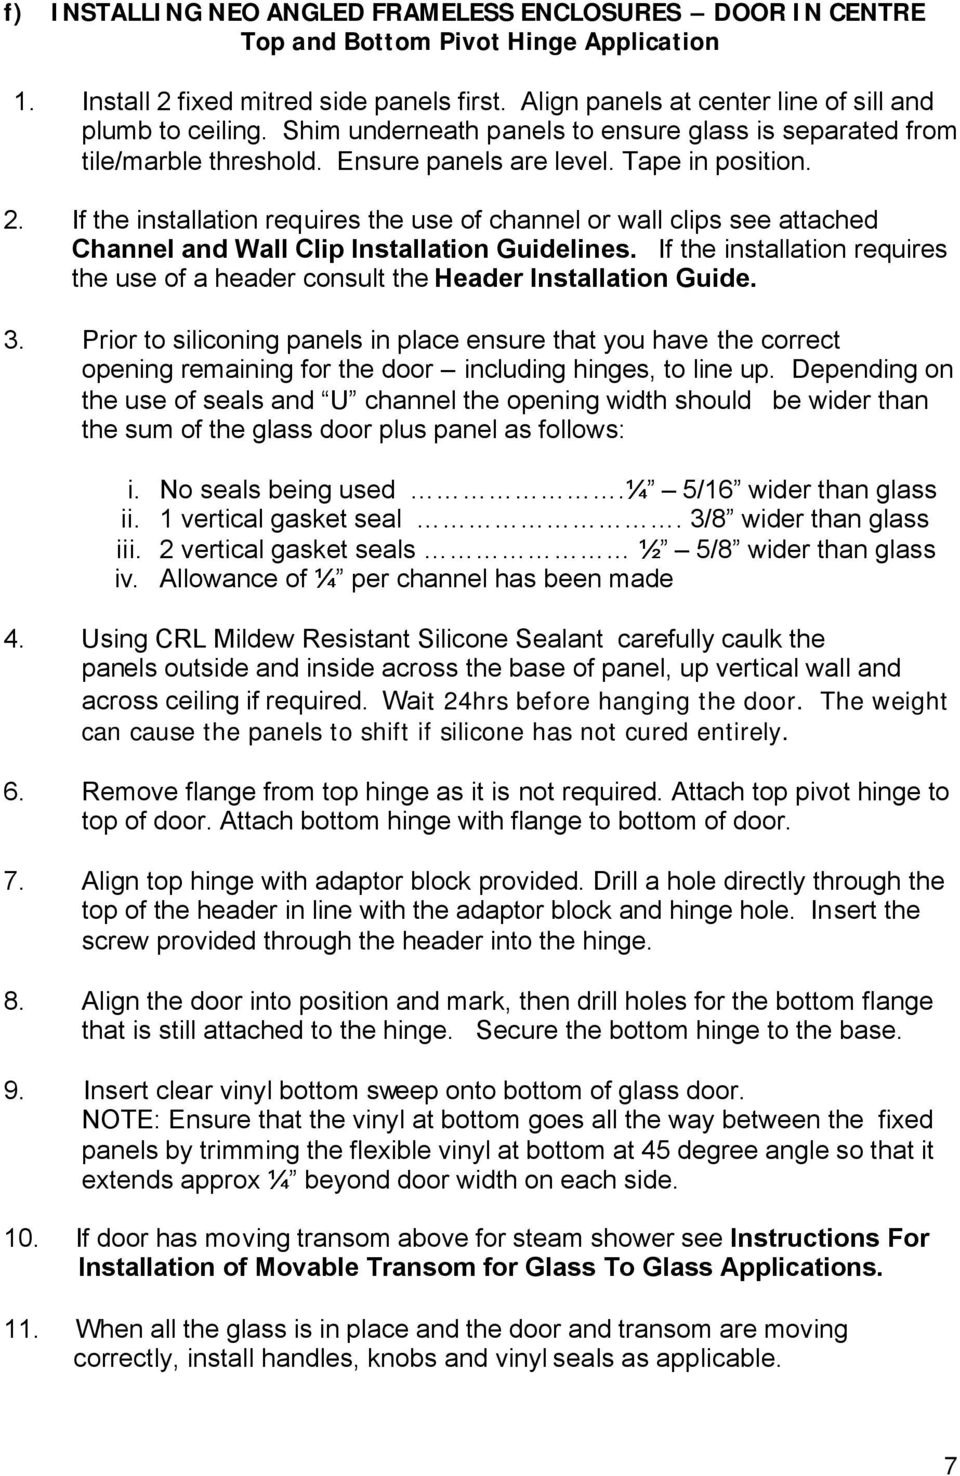 If the installation requires the use of channel or wall clips see attached Channel and Wall Clip Installation Guidelines.